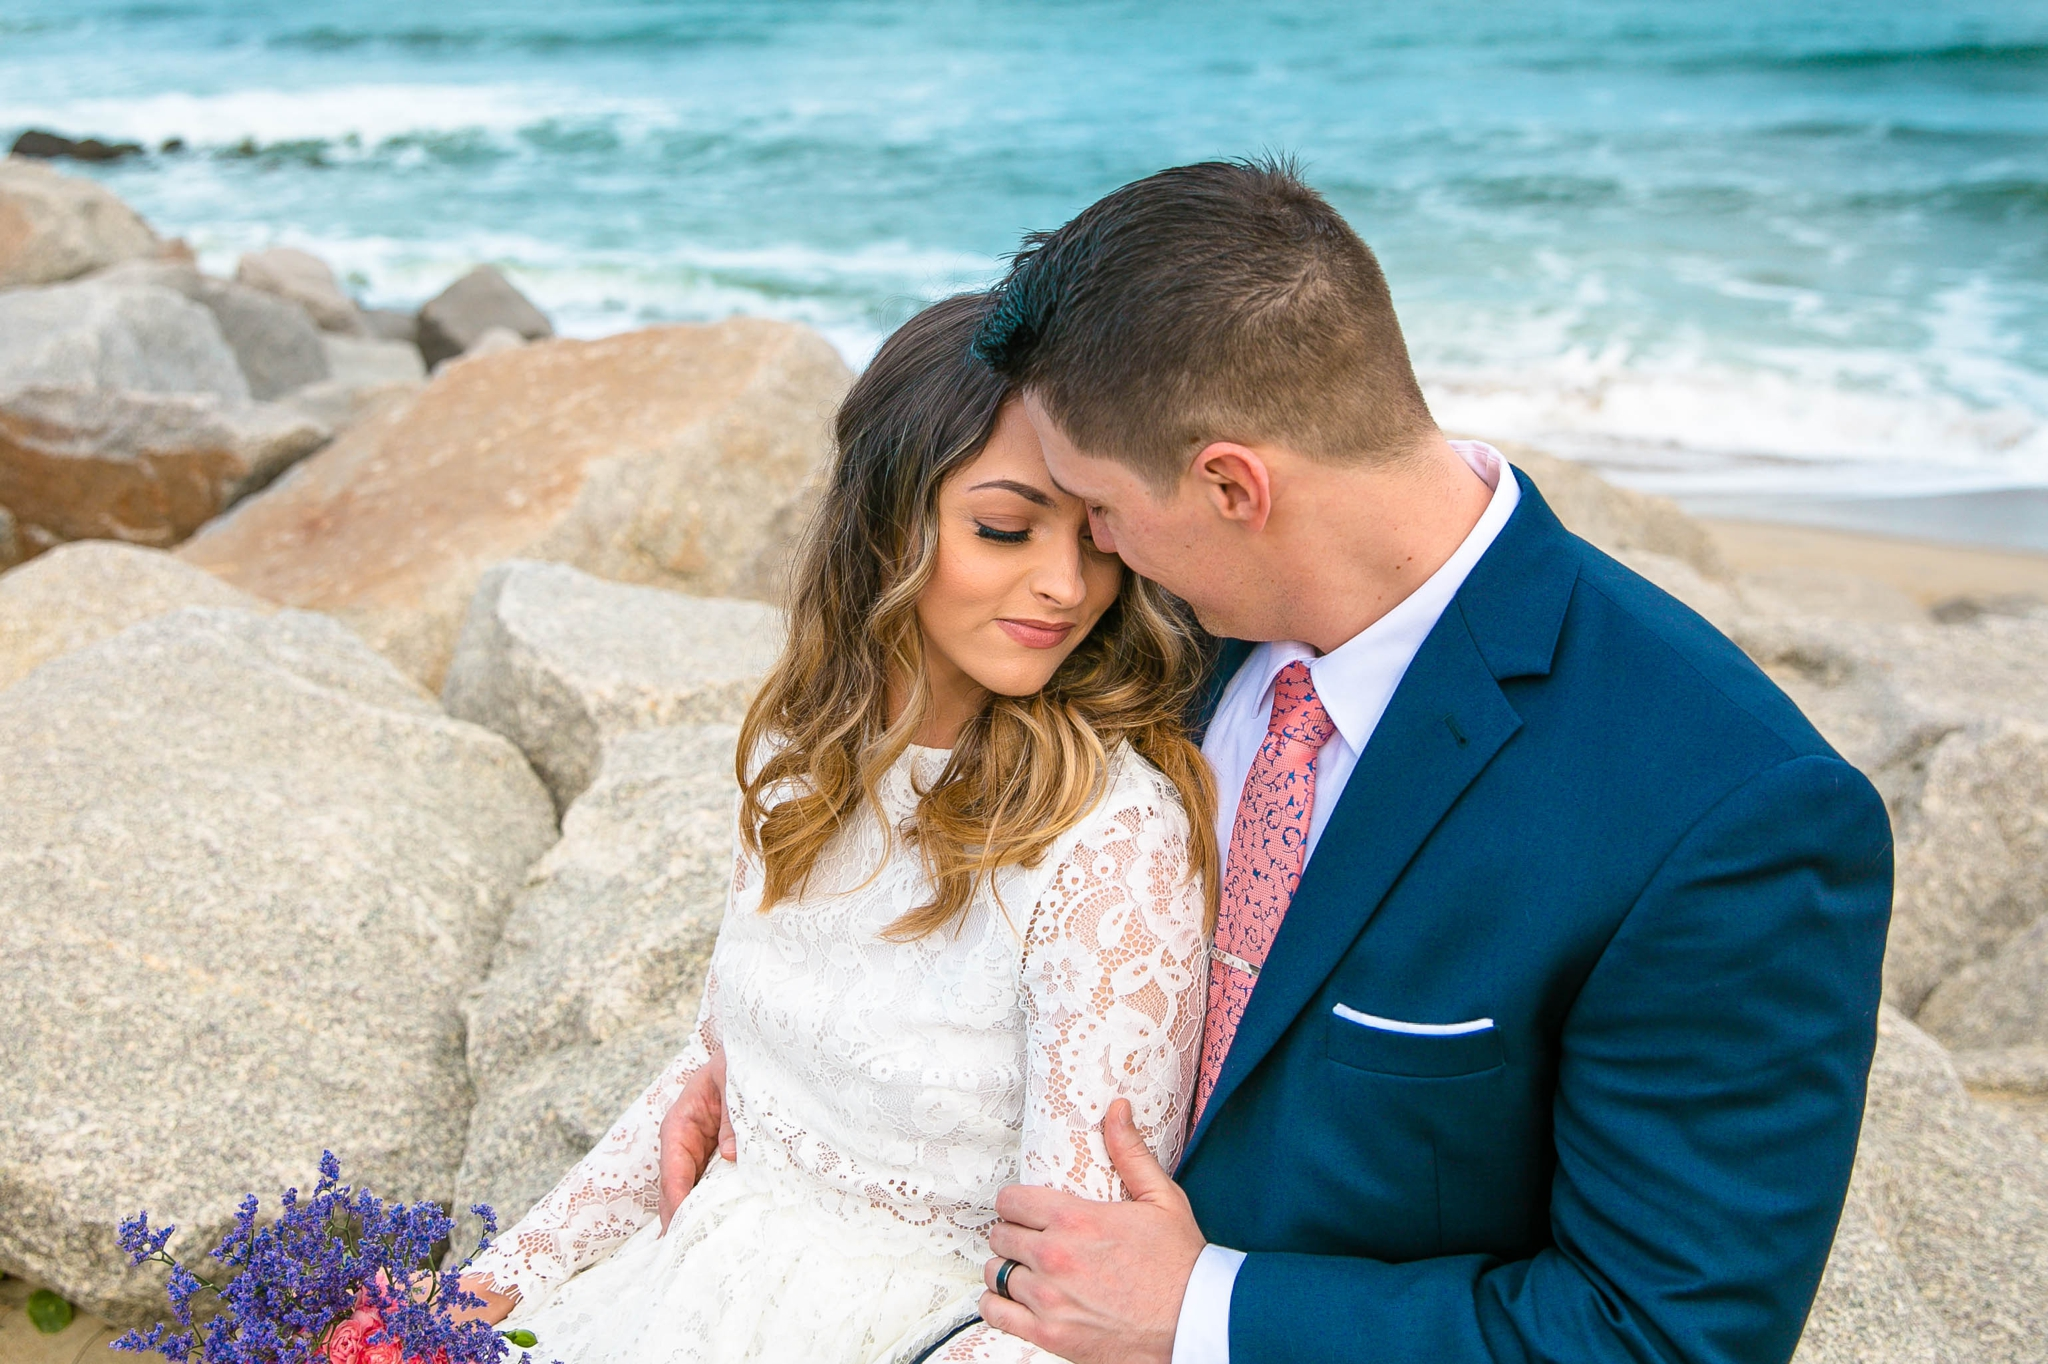 Clear blue water Beach Elopement Portraits - Bride and Groom on top of the Cliffs - - dress by asos with purple and pink flowers and navy suit - oahu hawaii wedding photographer